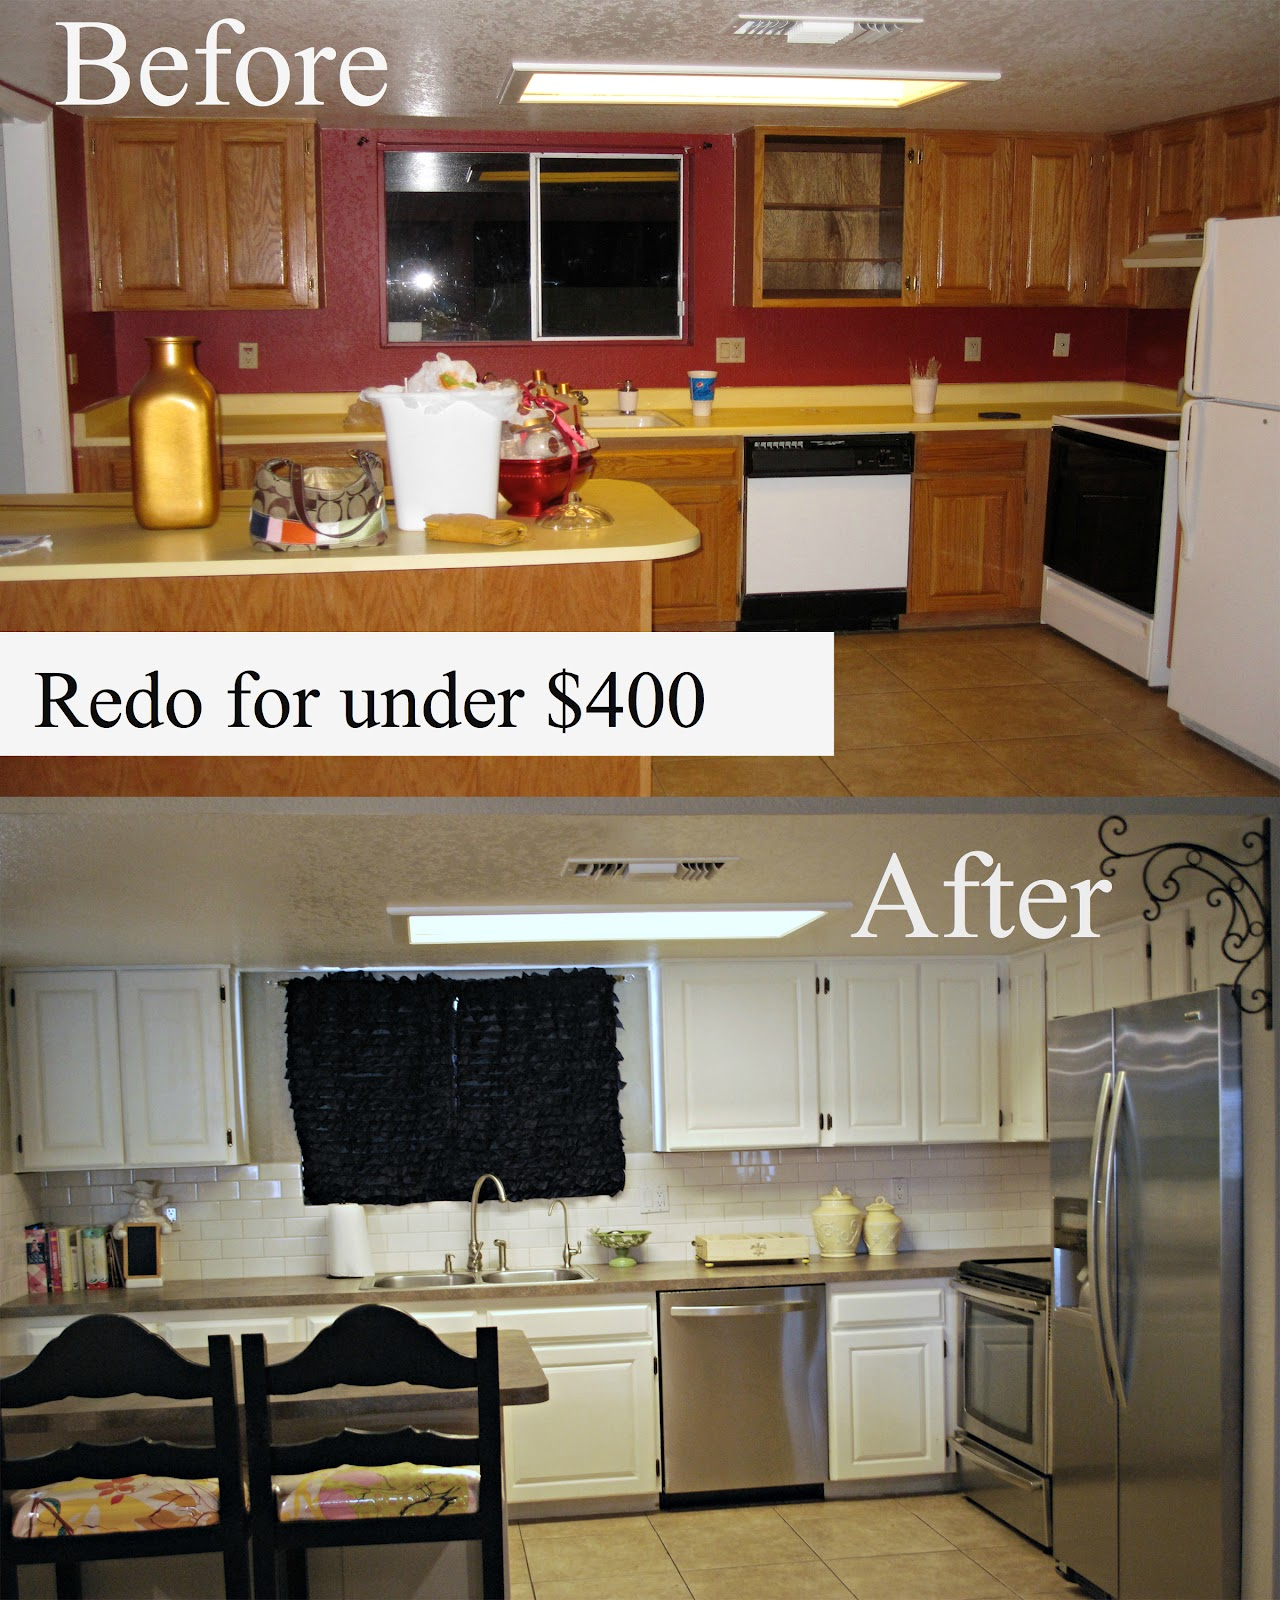 My Kitchen Redo under $400 Classy Clutter